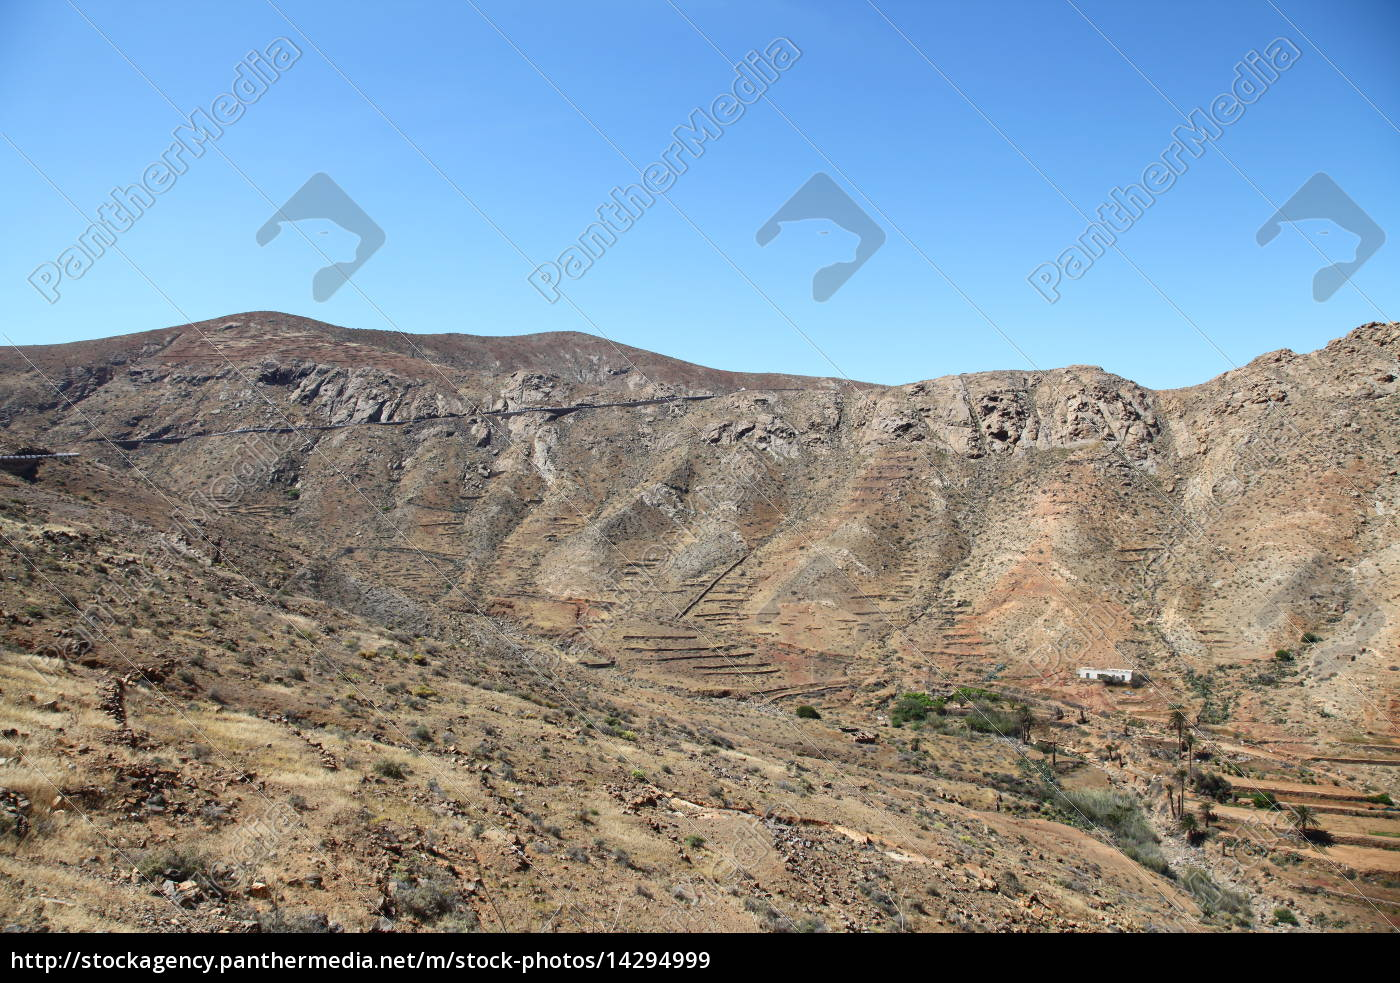 hill, mountains, canary islands, scenery, countryside, nature - 14294999